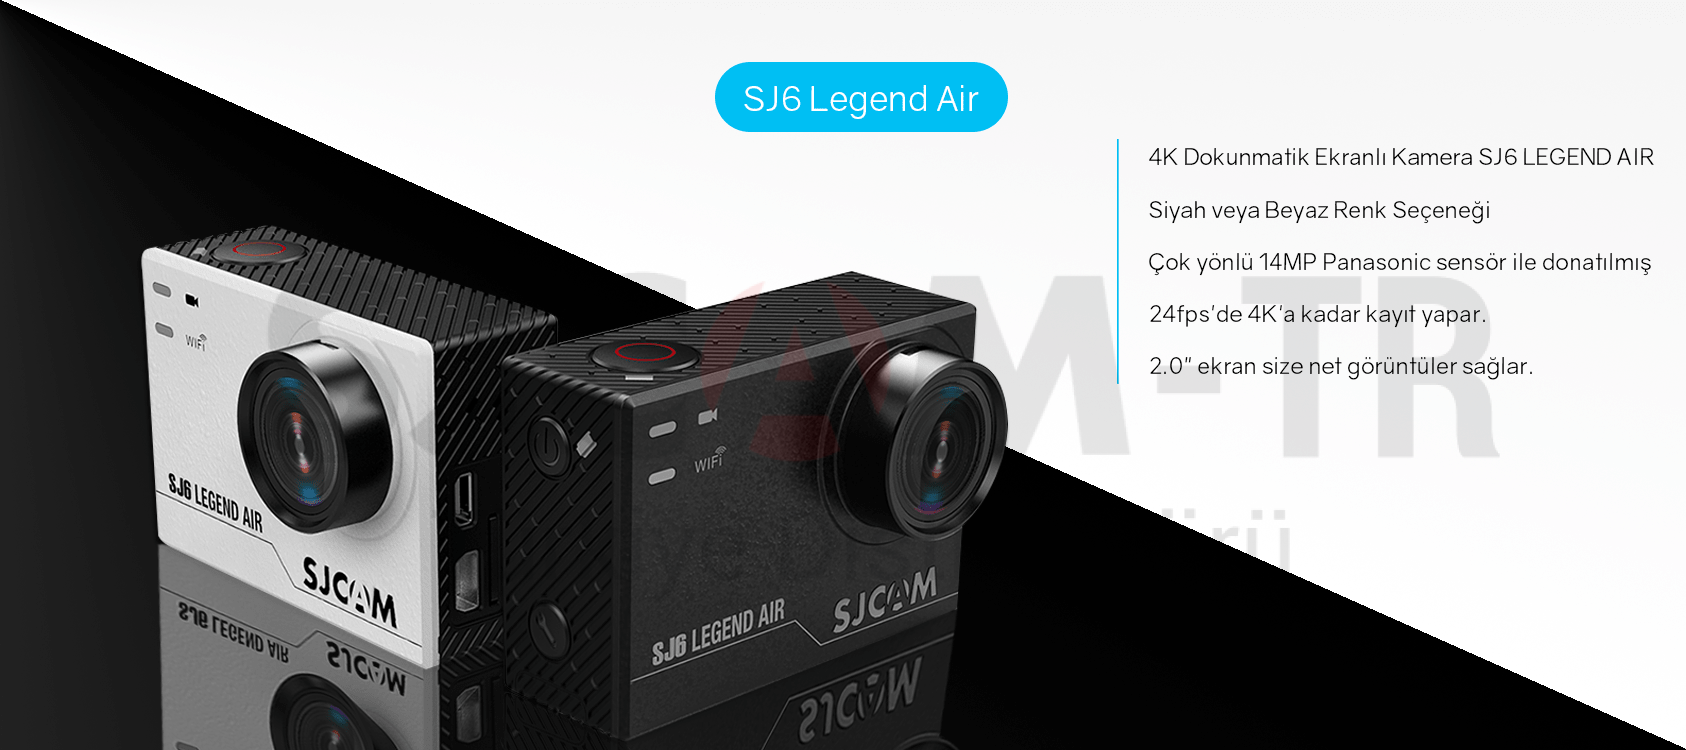 SJCAM S6 Legend Air